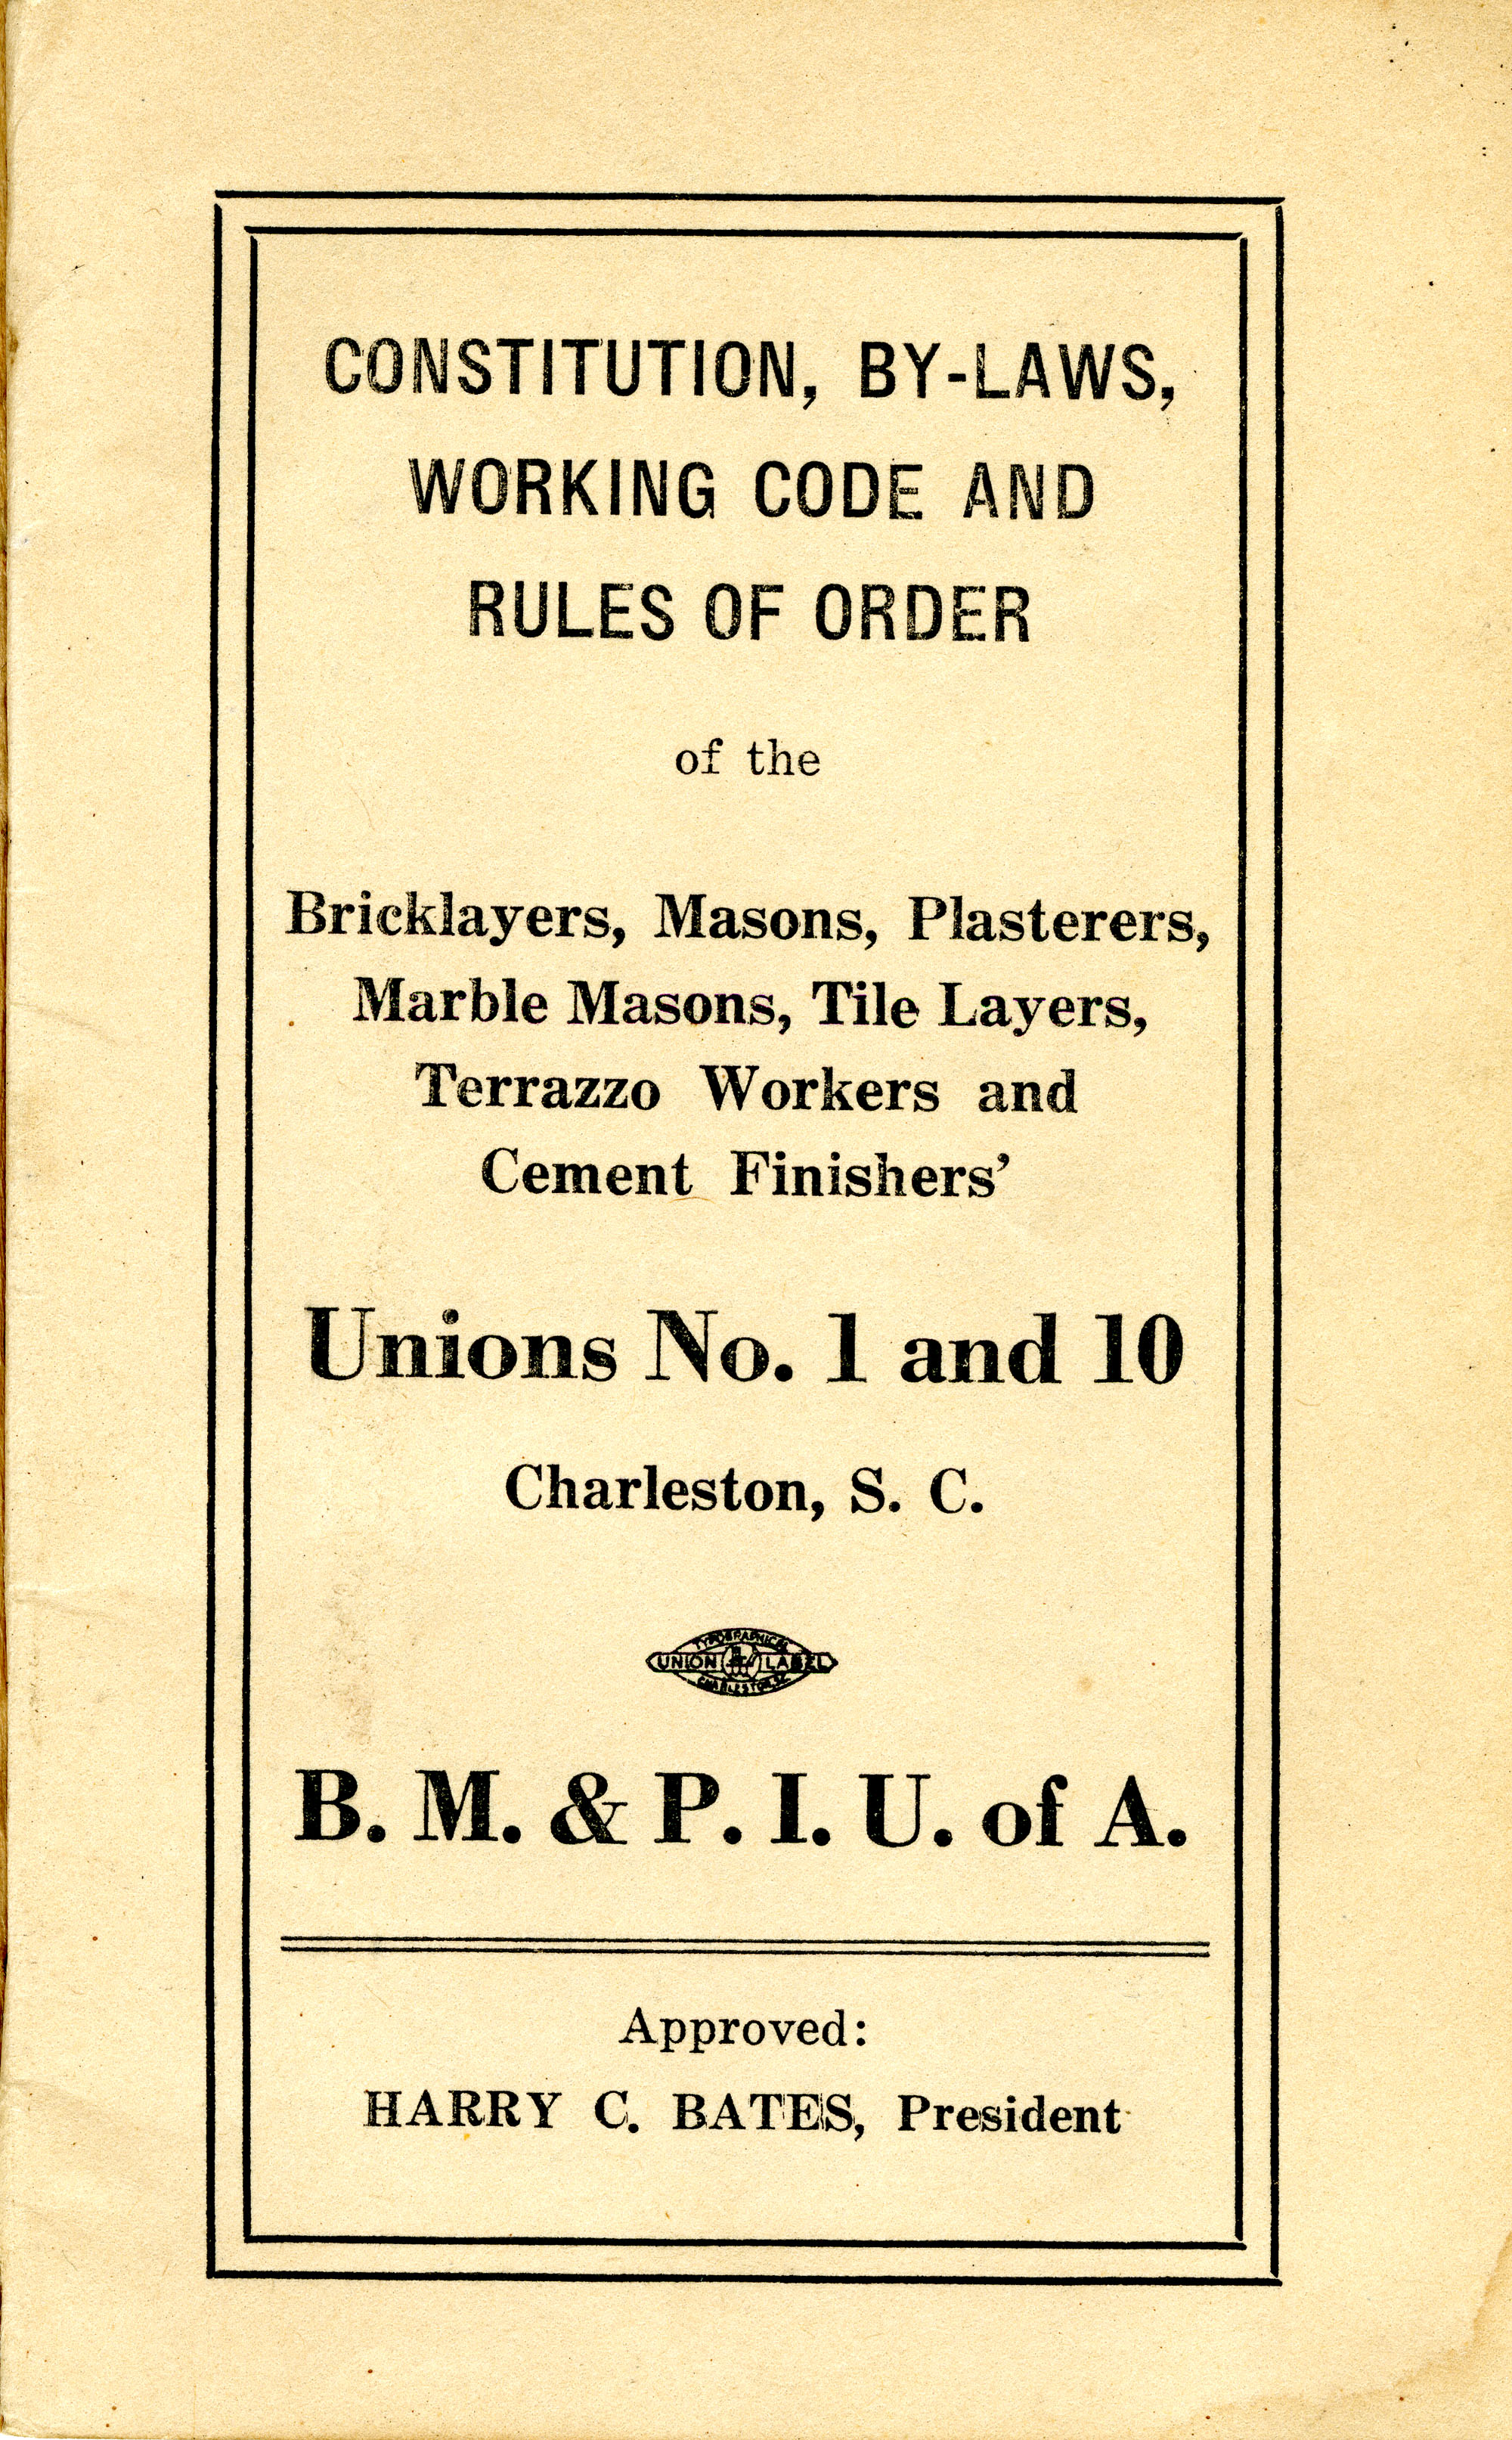 Constitution, by-laws, working code and rules of order, Page 1